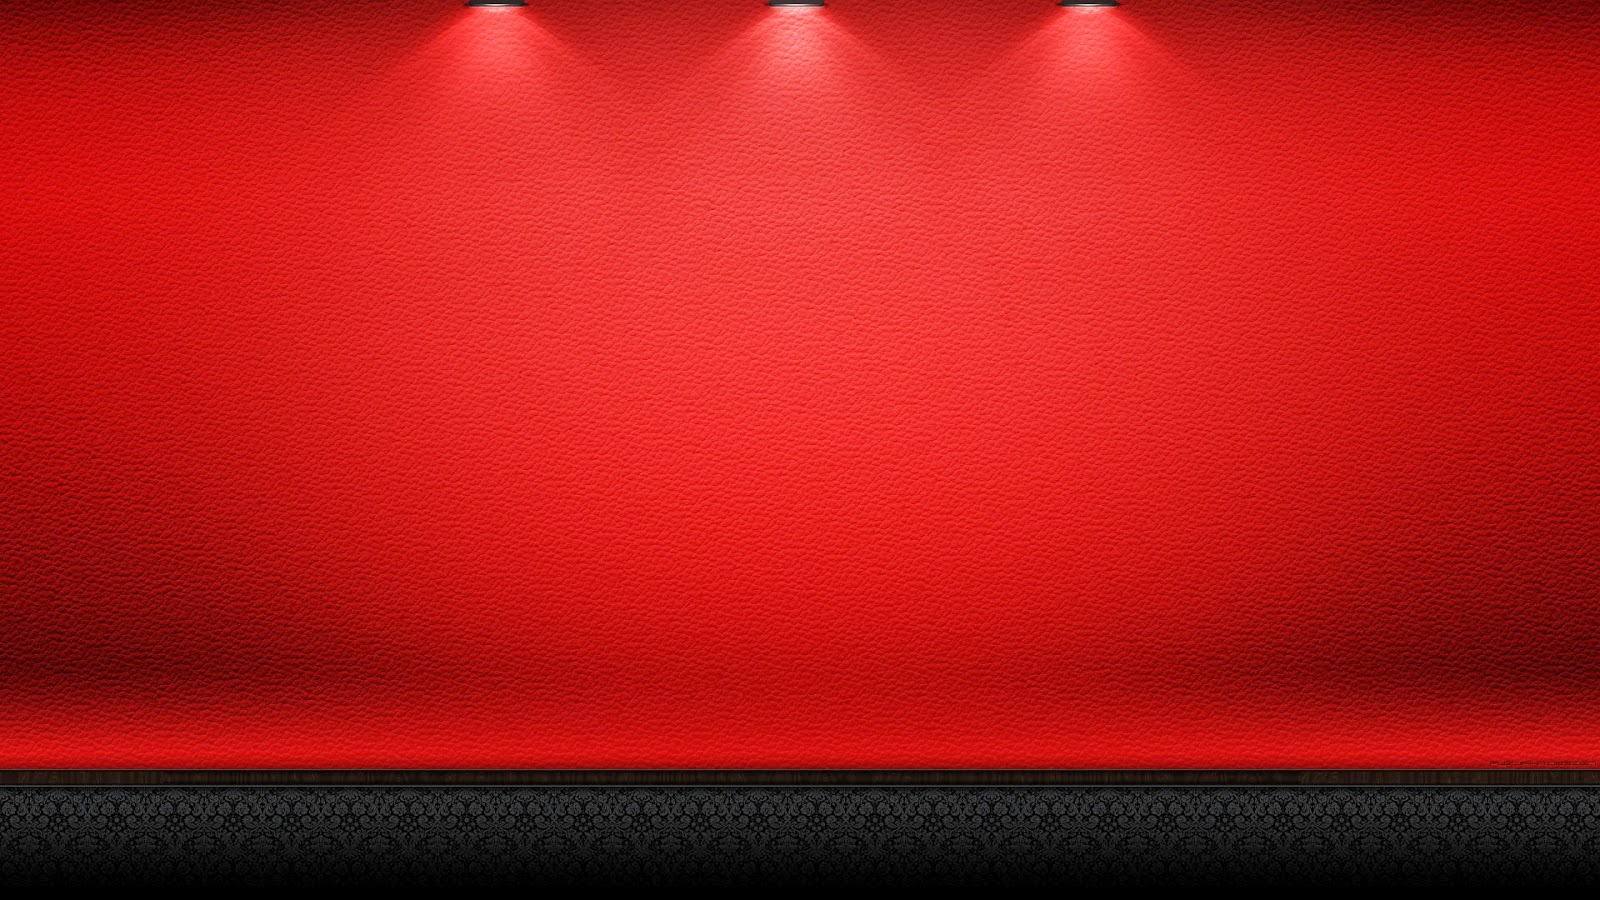 Collection of Black Red Wallpaper Designs on HDWallpapers